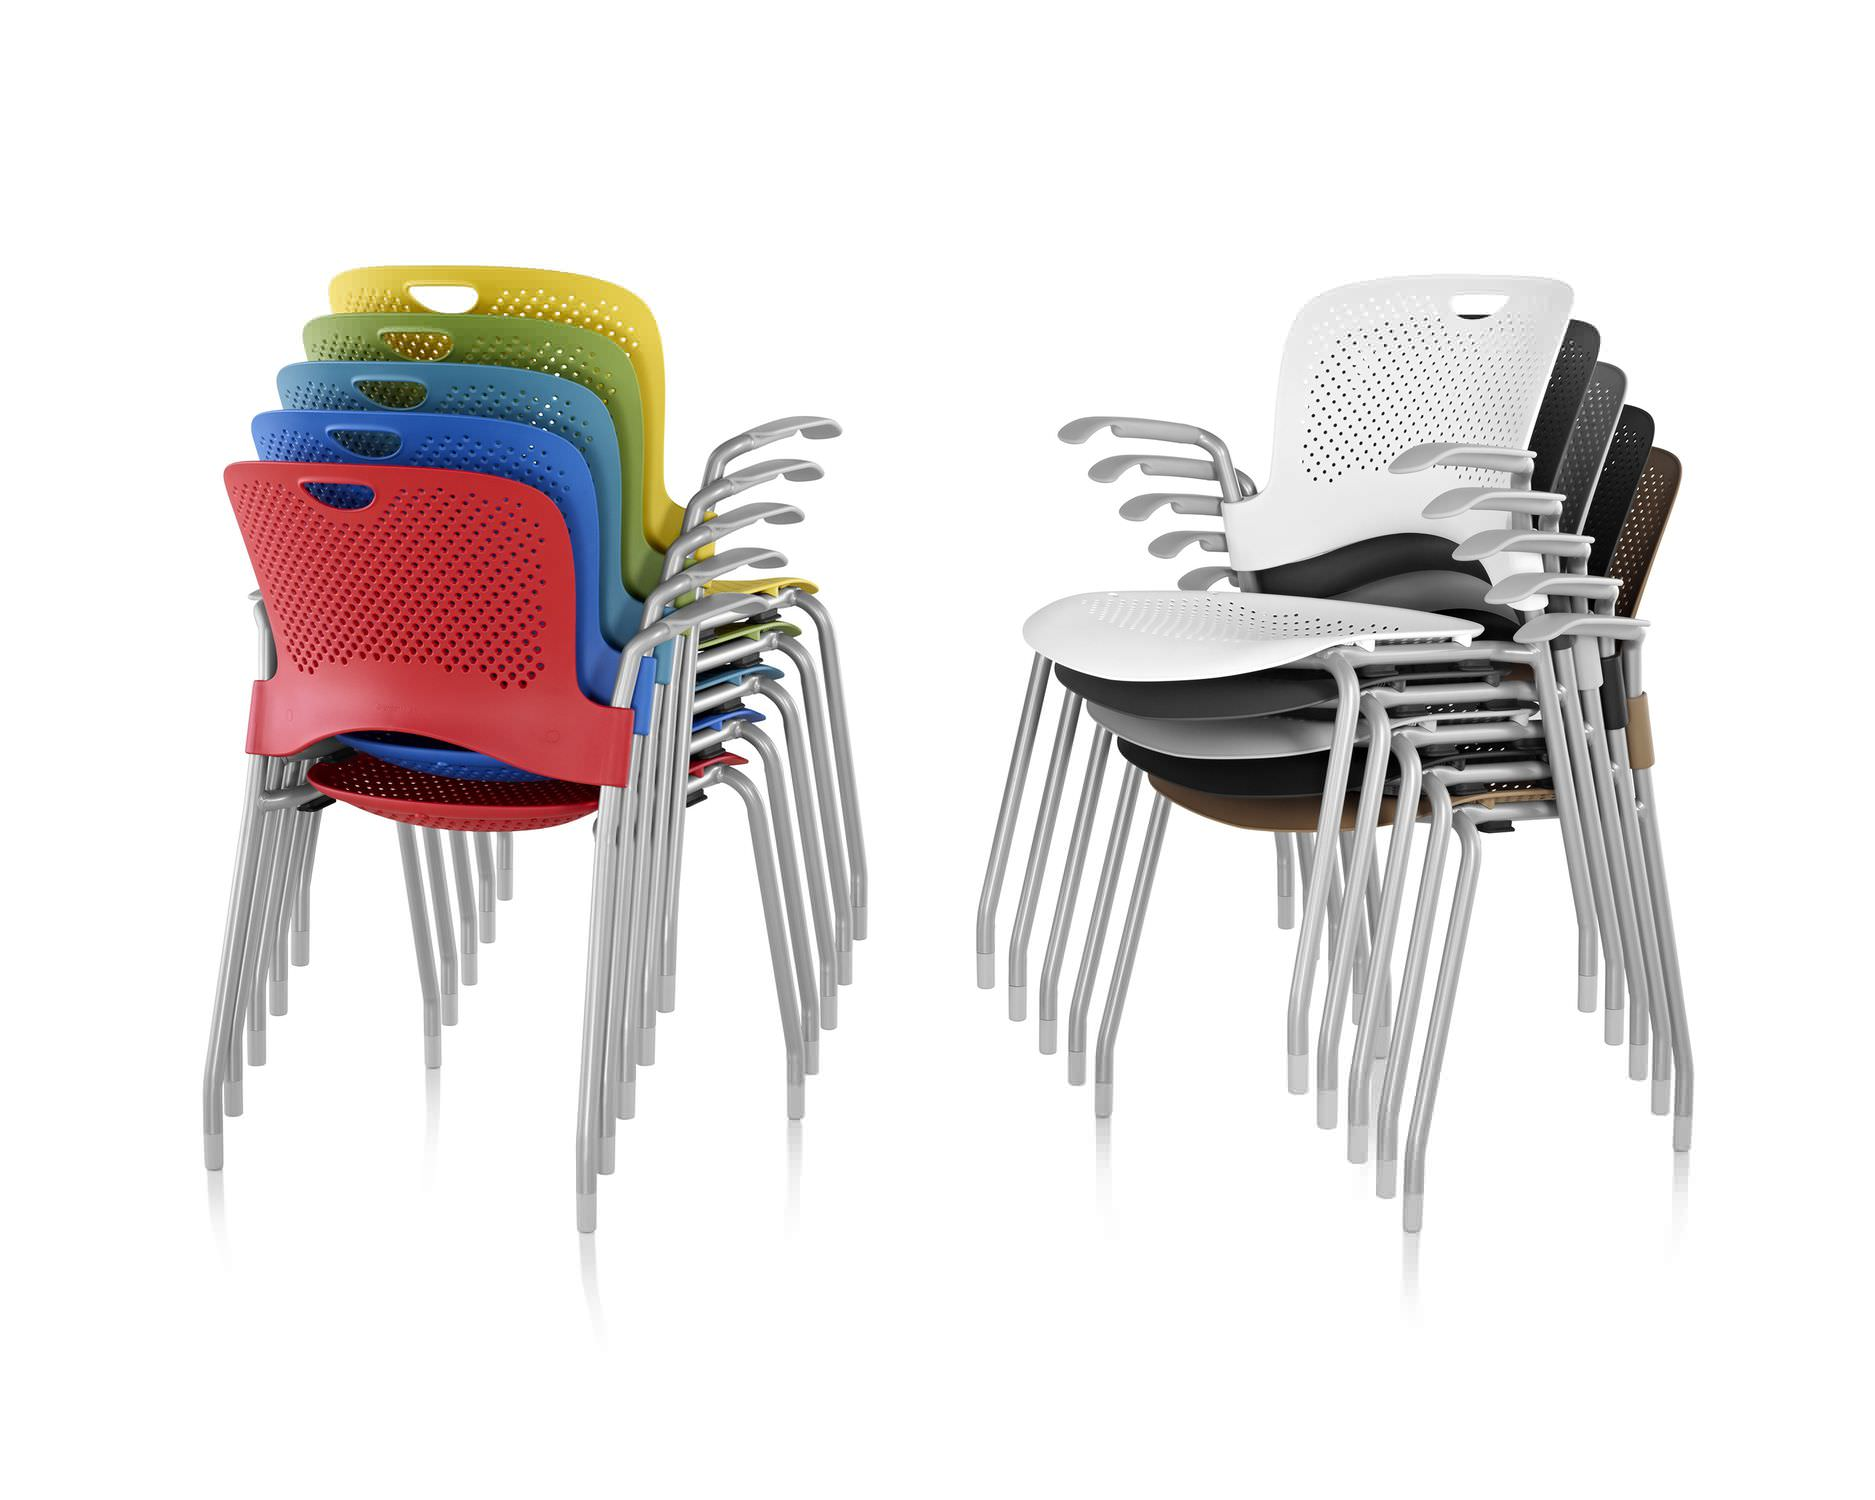 ... contemporary visitor chair / with armrests / stackable / fabric  sc 1 st  ArchiExpo & Contemporary visitor chair / with armrests / stackable / fabric ...